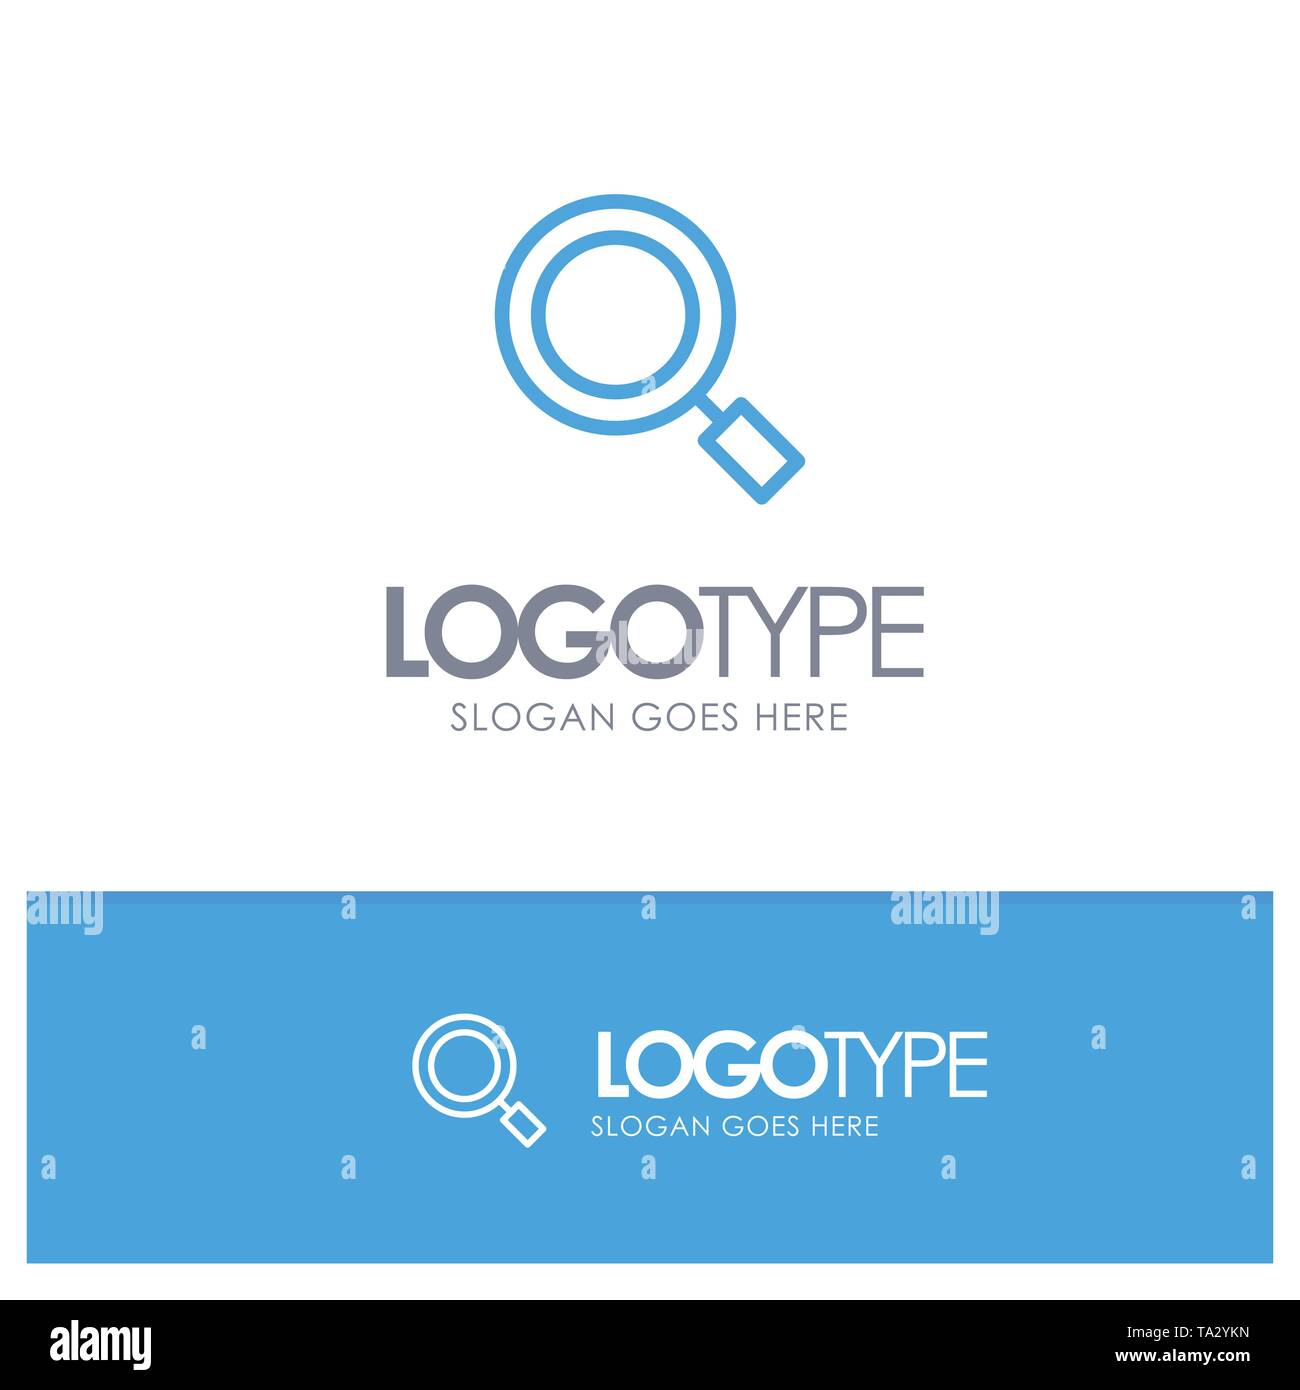 General, Magnifier, Magnify, Search Blue outLine Logo with place for tagline - Stock Image